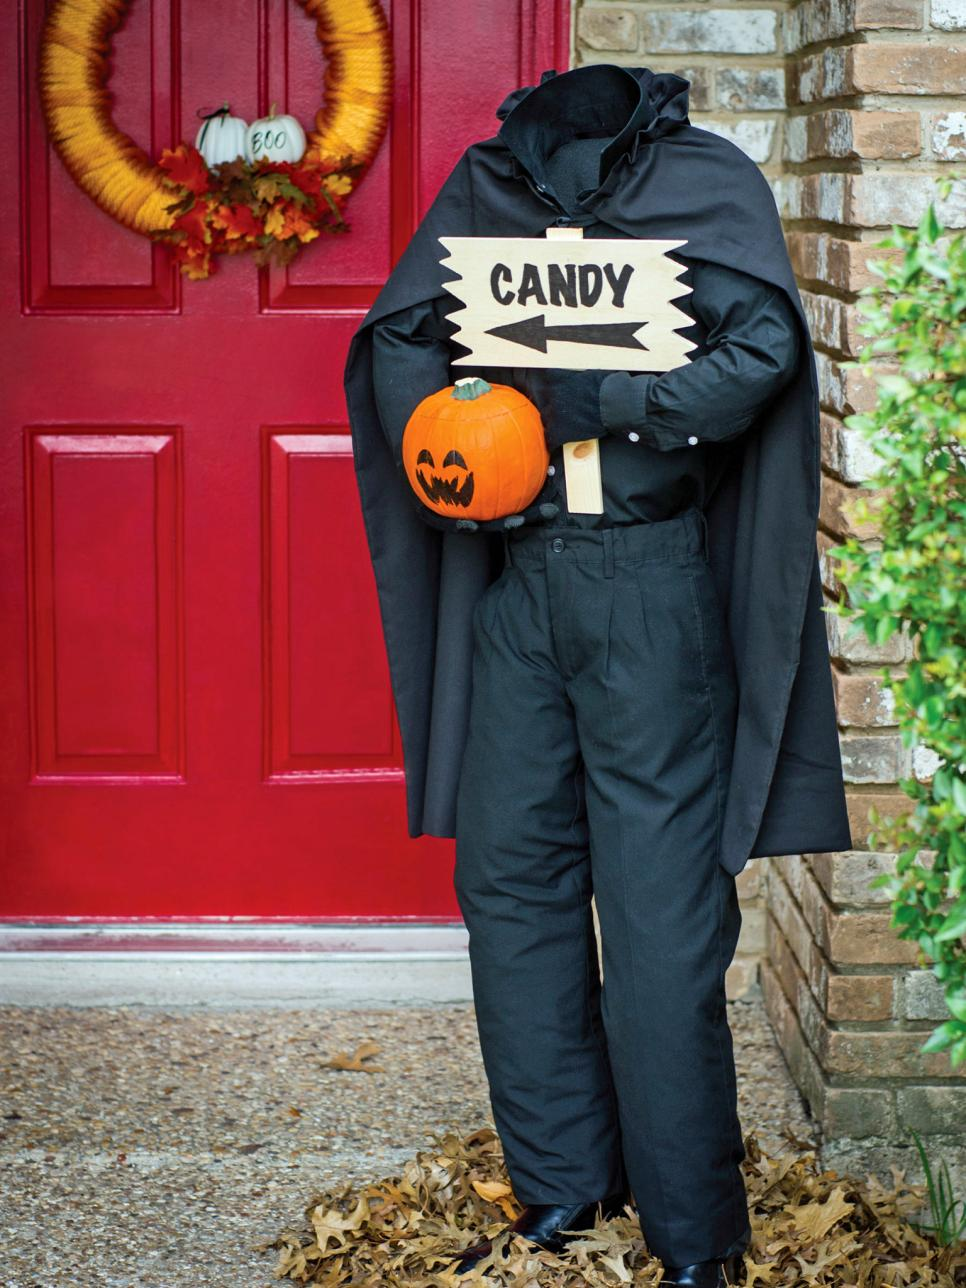 15 Great Decorating Ideas for Halloween